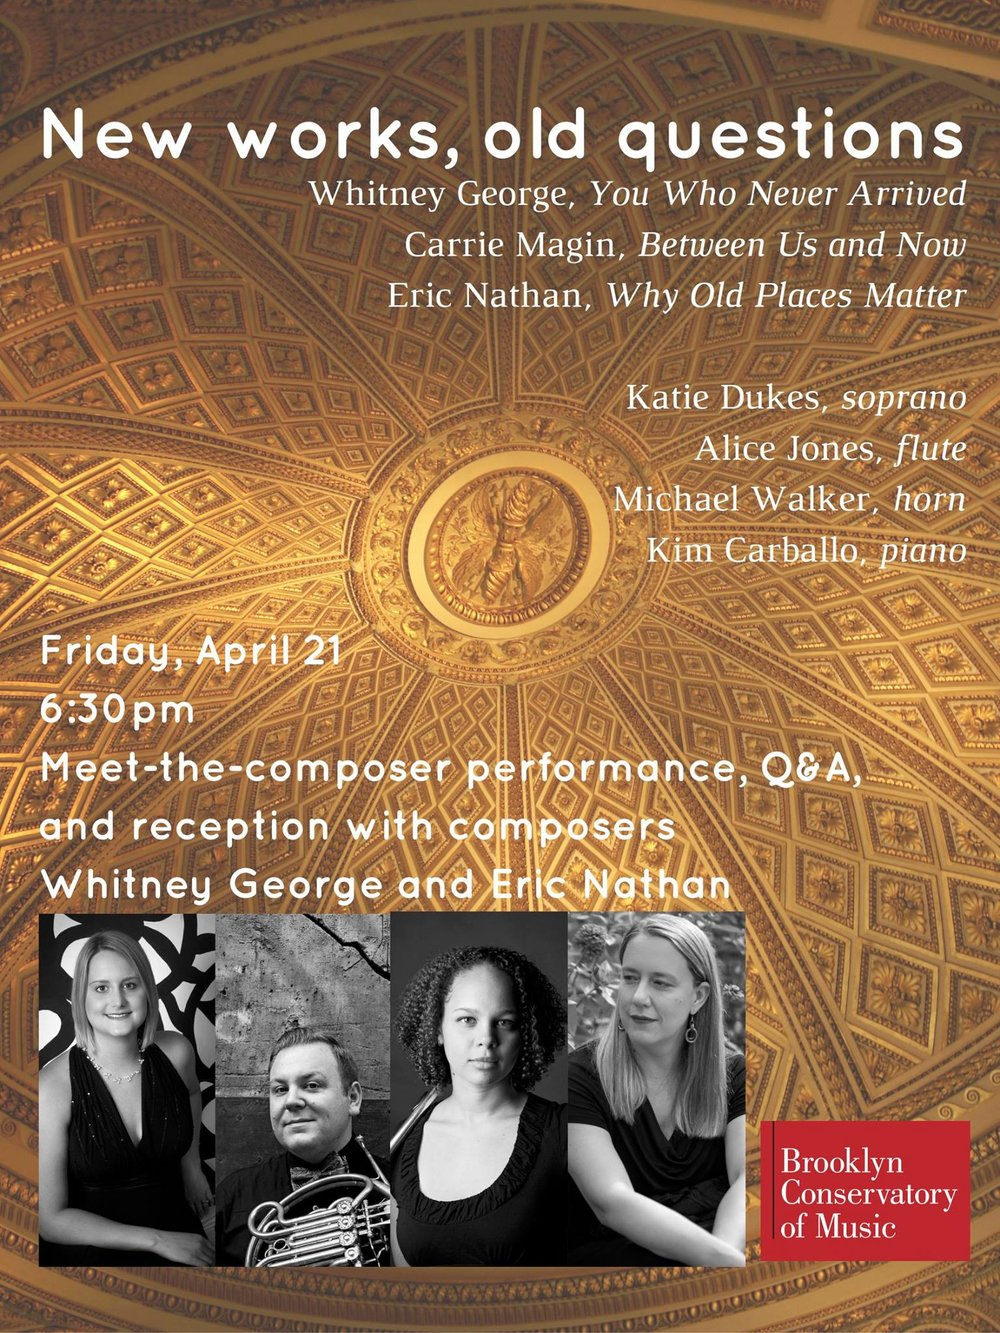 In a program conceived under the warm southern Italian summer sun over a bottle of  vino di tavola,   Katie Dukes  (soprano), Alice Jones (flute),  Michael Walker  (horn), and  Kim Carballo  (piano) present world premieres and new works by  Whitney George ,  Carrie Magin , and  Eric Nathan . New works for soprano, flute, horn, and piano Whitney George,  You Who Never Arrived  Carrie Magin,  Between Us Now  Eric Nathan,  Why Old Places Matter   Thursday, April 20, 12:10pm –  Queensborough Community College  222-05 56th Avenue, Bayside, NY – H110 Free admission   Friday, April 21, 6:30pm –  Brooklyn Conservatory of Music  Meet-the-composer with Whitney George and Eric Nathan Performance, Q&A session, and reception 58 7th Avenue, Brooklyn, NY Free admission (suggested donation)   Saturday, April 22, 8pm –  Scholes Street Studio  375 Lorimer Street, Brooklyn, NY $10   Sunday, April 23, 2pm –  Gateway City Arts Center  92 Race Street, Holyoke, MA Free admission (suggested donation)   Tuesday, April 25, 12:30pm –  Brooklyn College  Presented by the Composer Forum and Hitchcock Institute 2900 Bedford Avenue, Brooklyn, NY ree admission